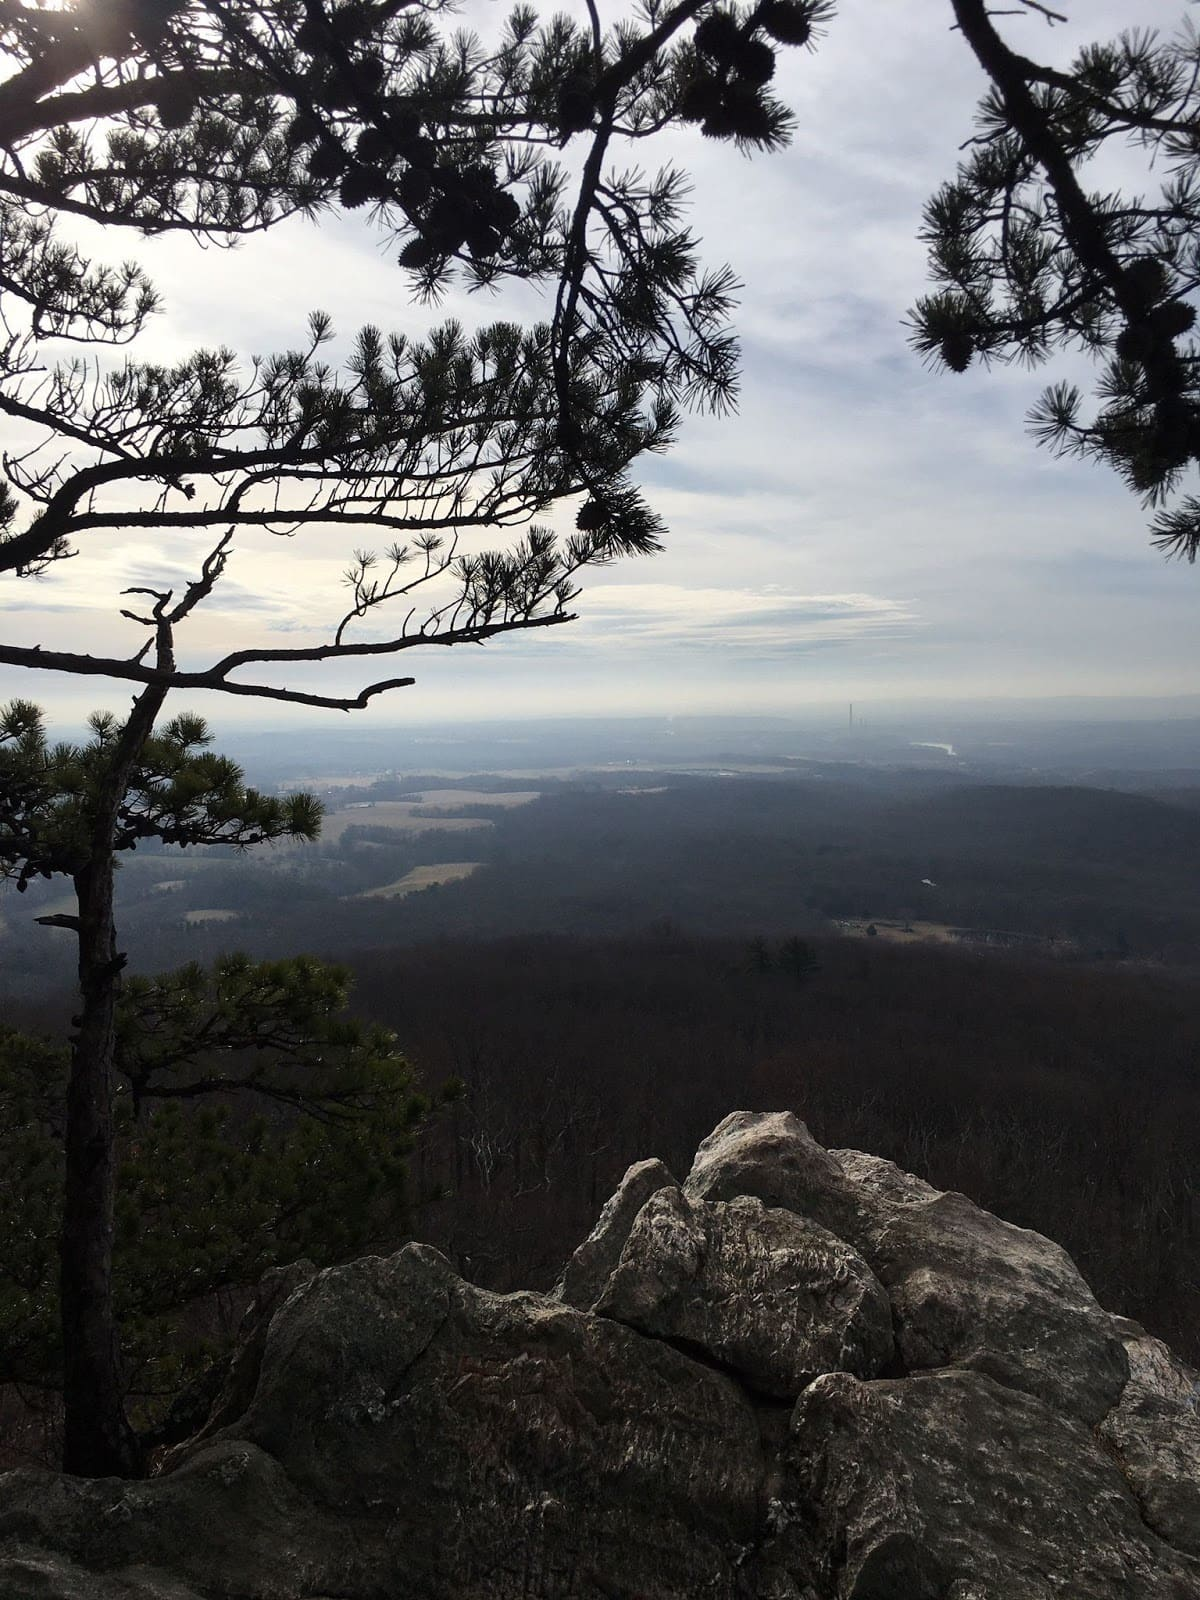 Sugarload Mountain // Looking for the best hikes in Maryland? Here are our 7 favorite Maryland trails including distances, descriptions, and local tips.